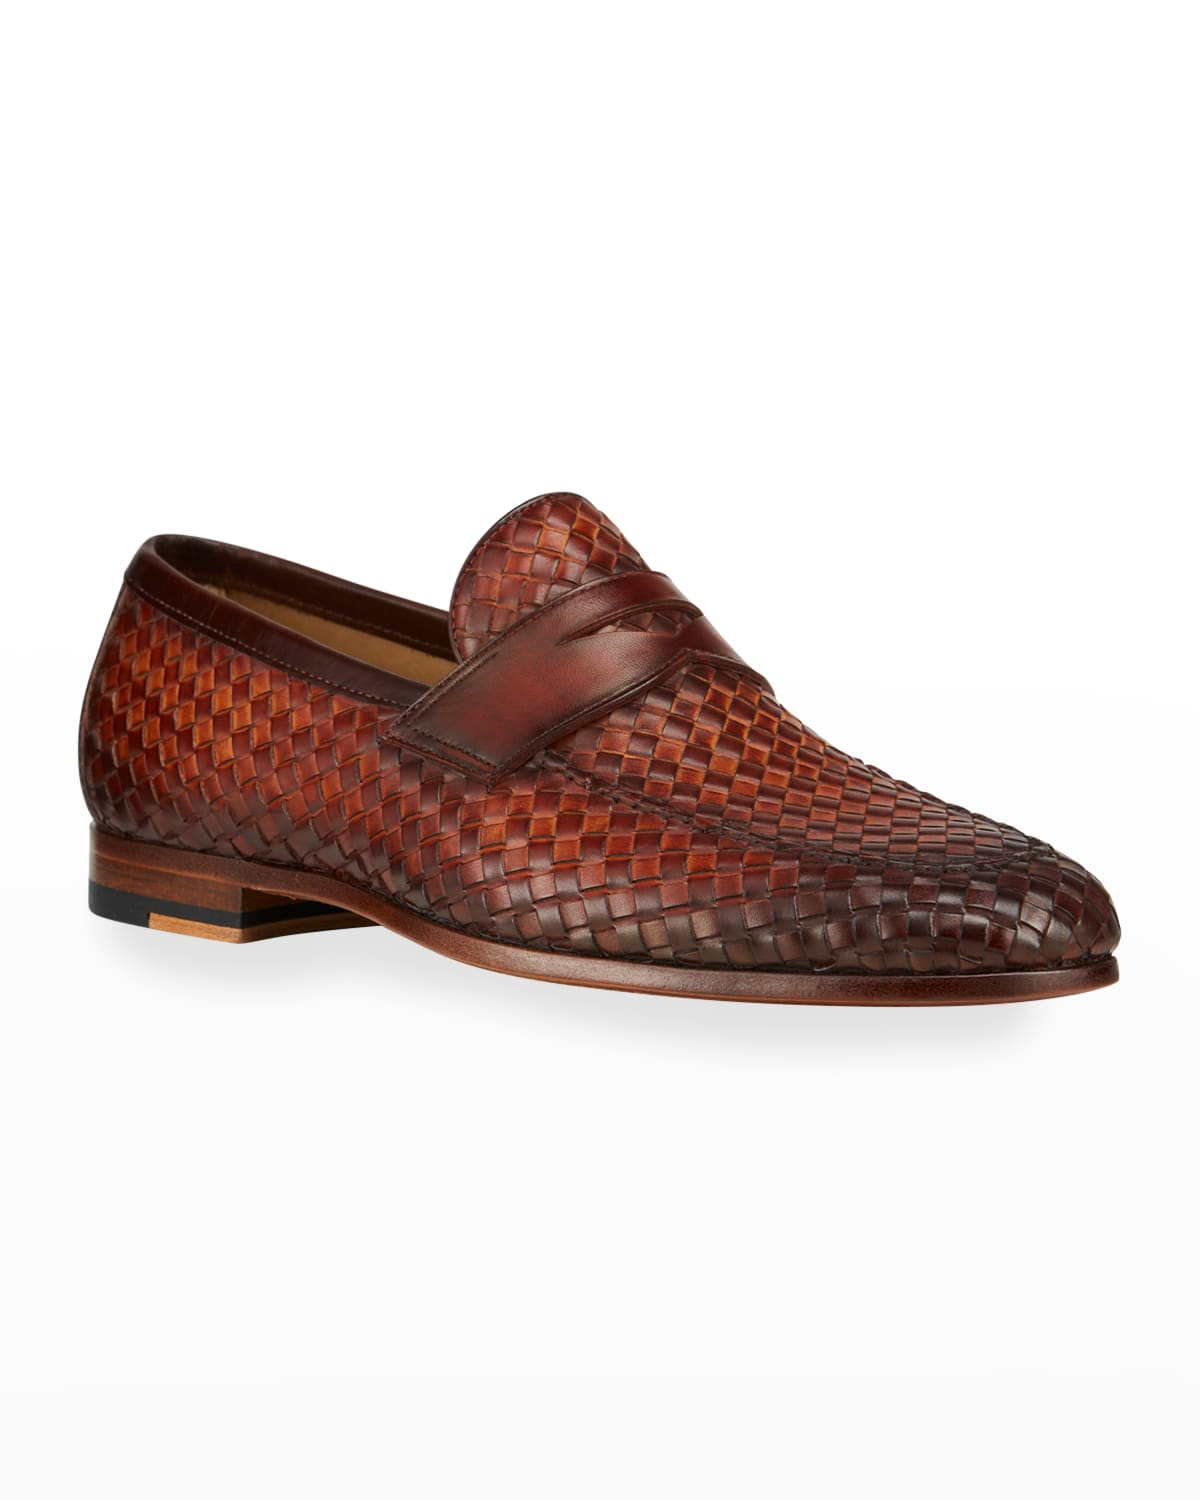 Men's Woven Leather Penny Loafers